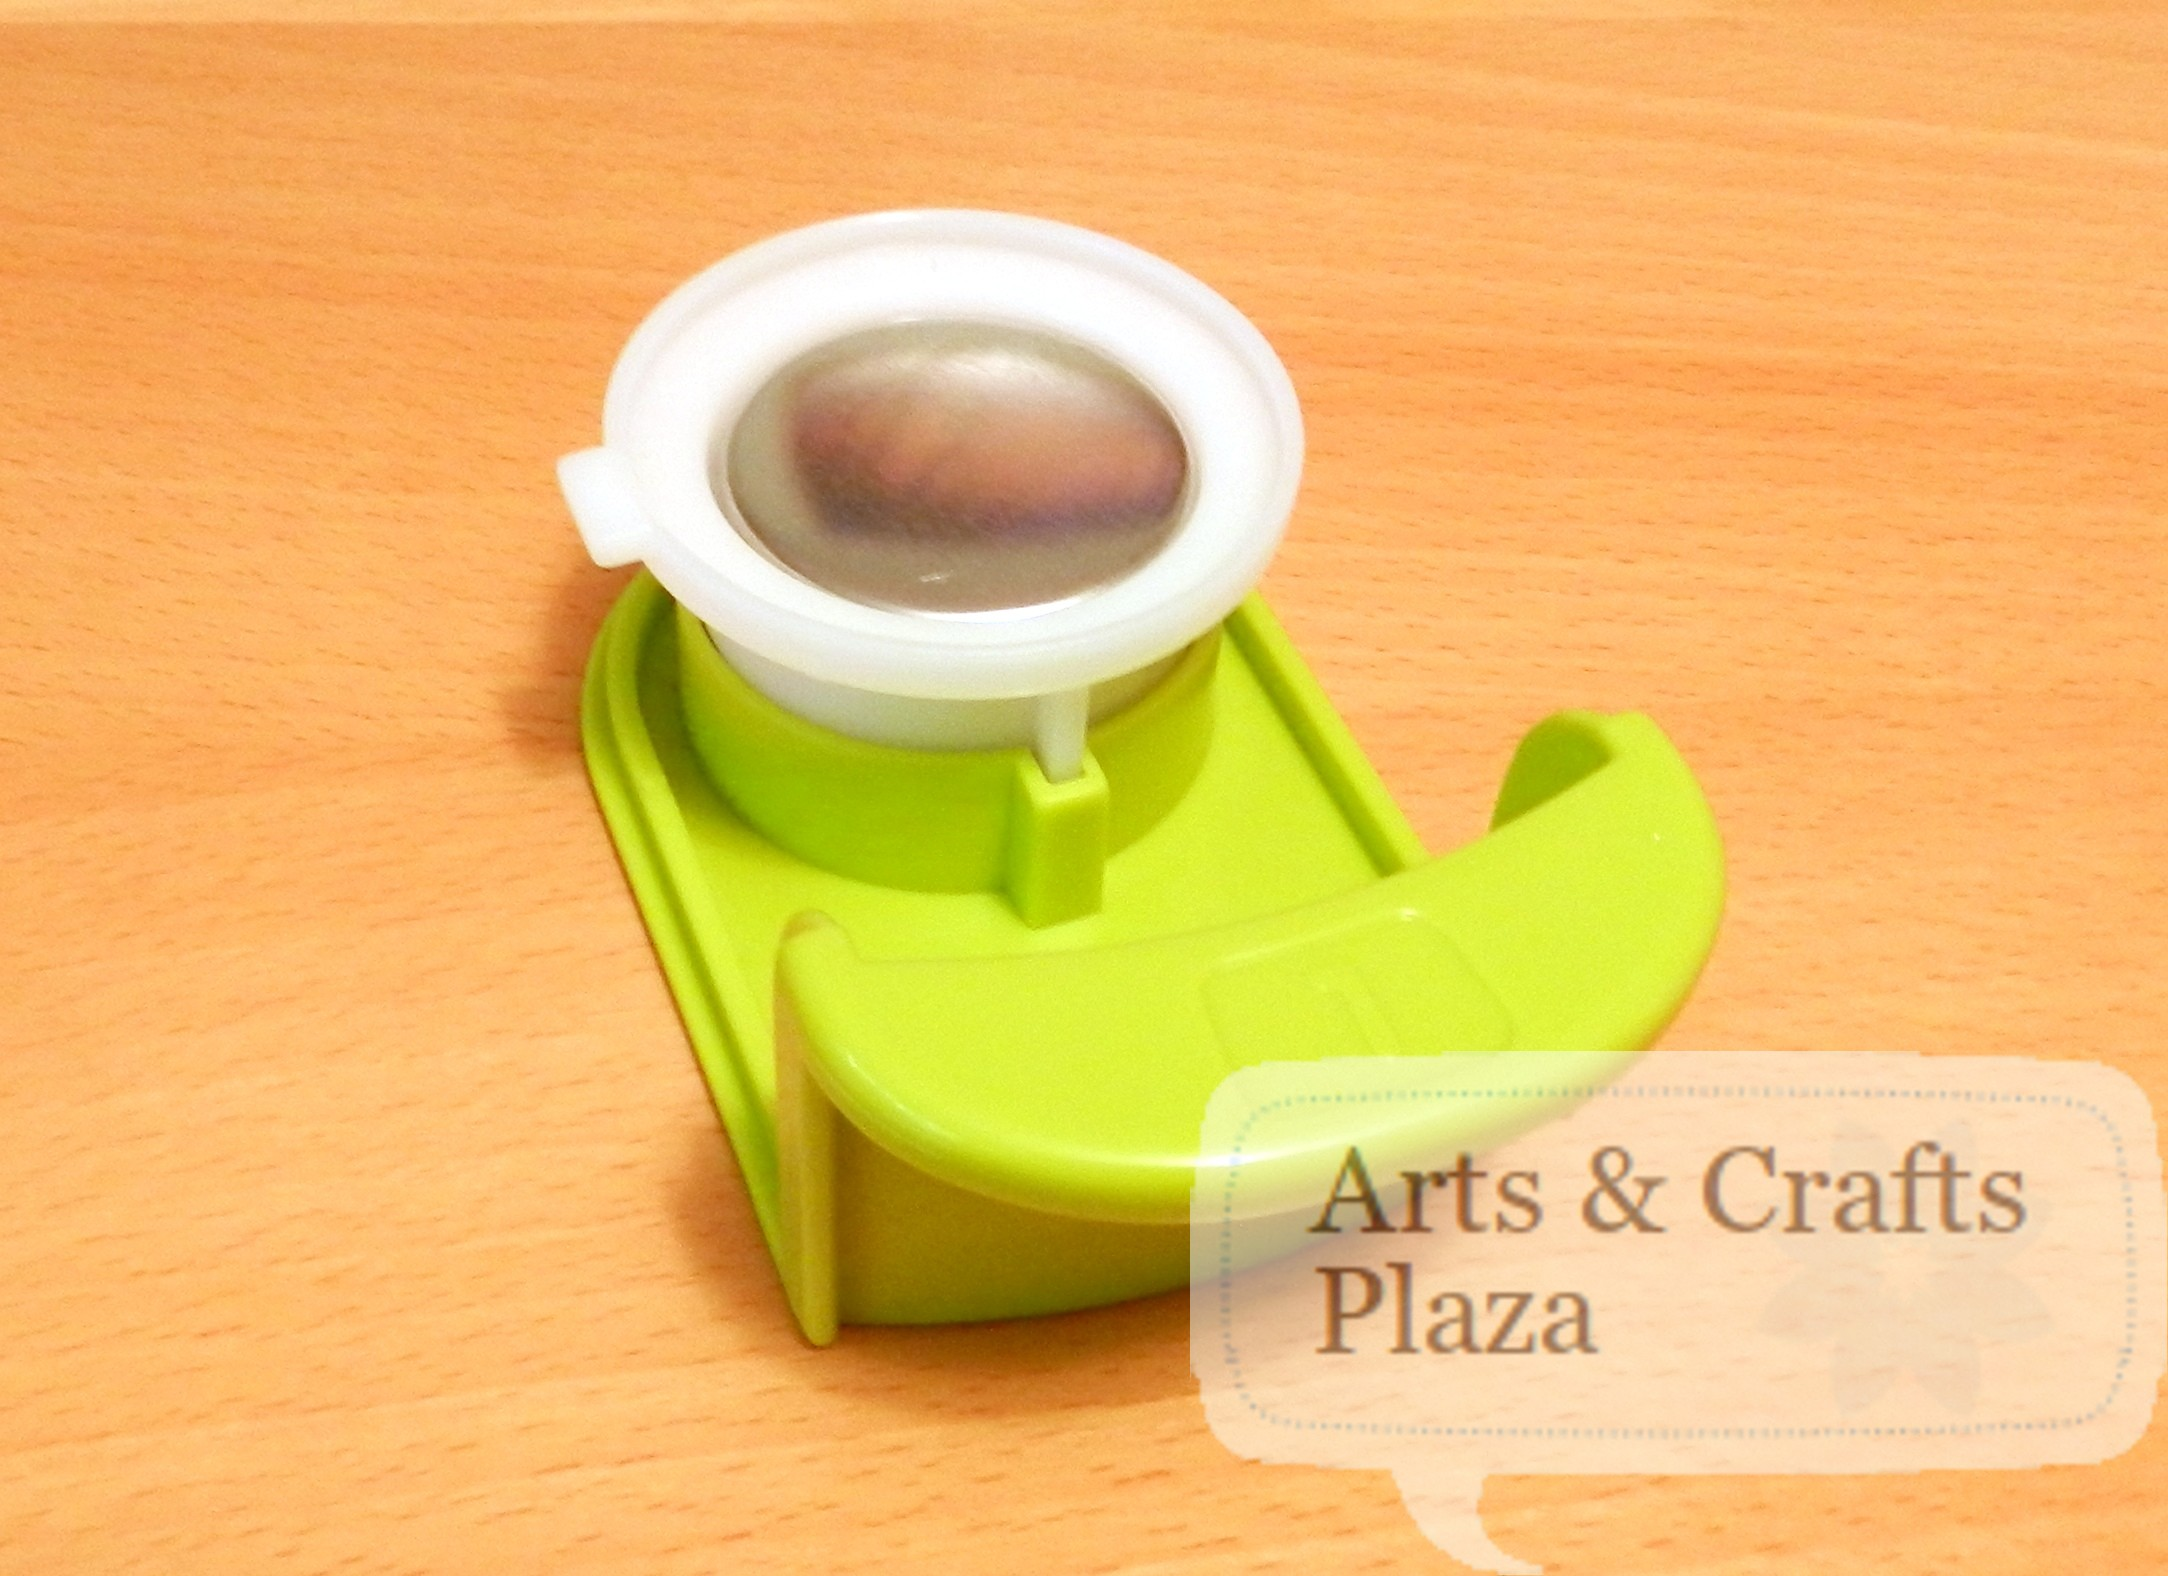 Button maker 14 arts crafts plaza for Michaels crafts button maker